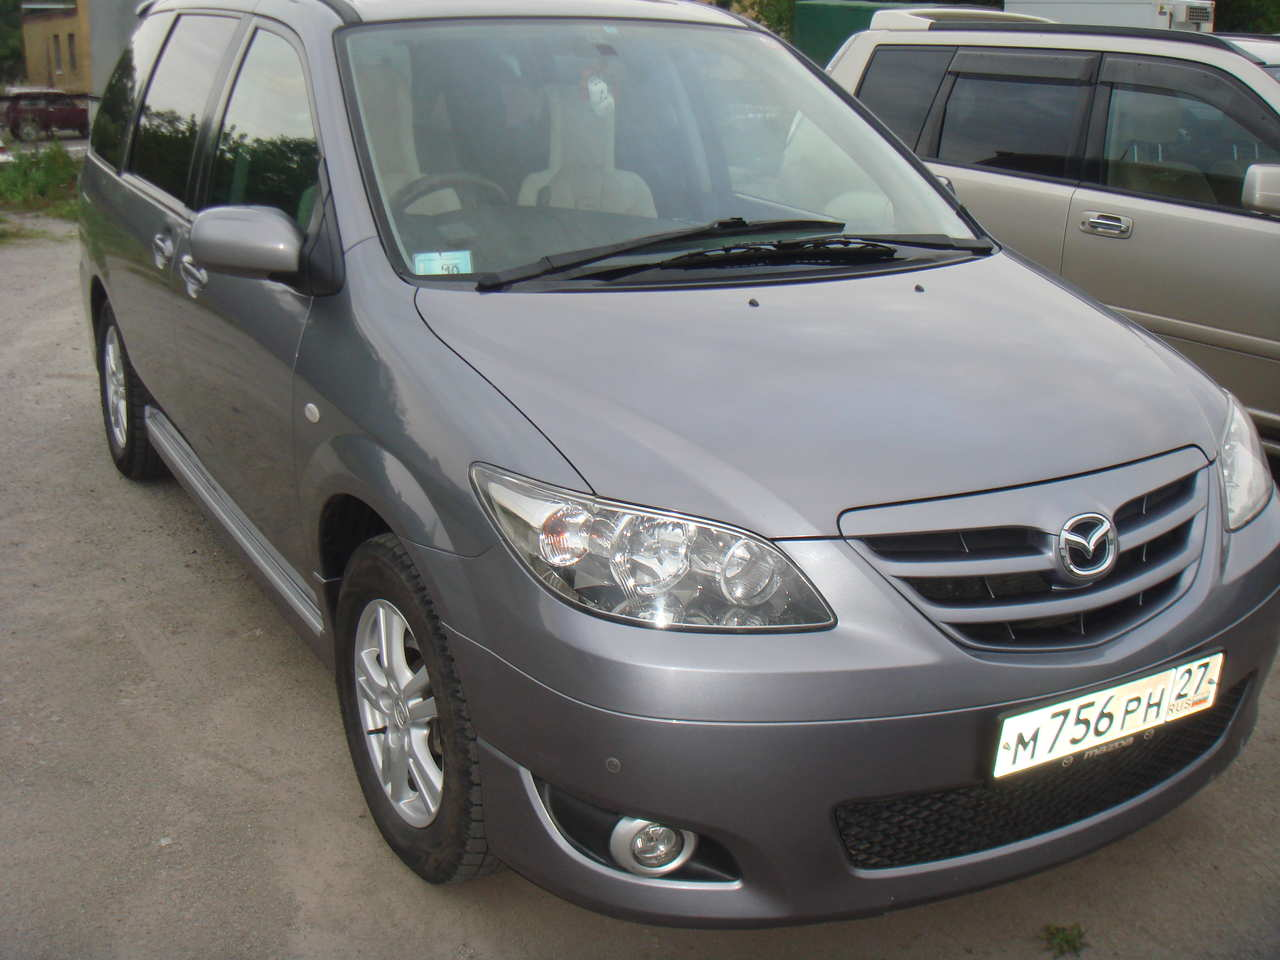 used 2004 mazda mpv photos 2300cc gasoline ff. Black Bedroom Furniture Sets. Home Design Ideas